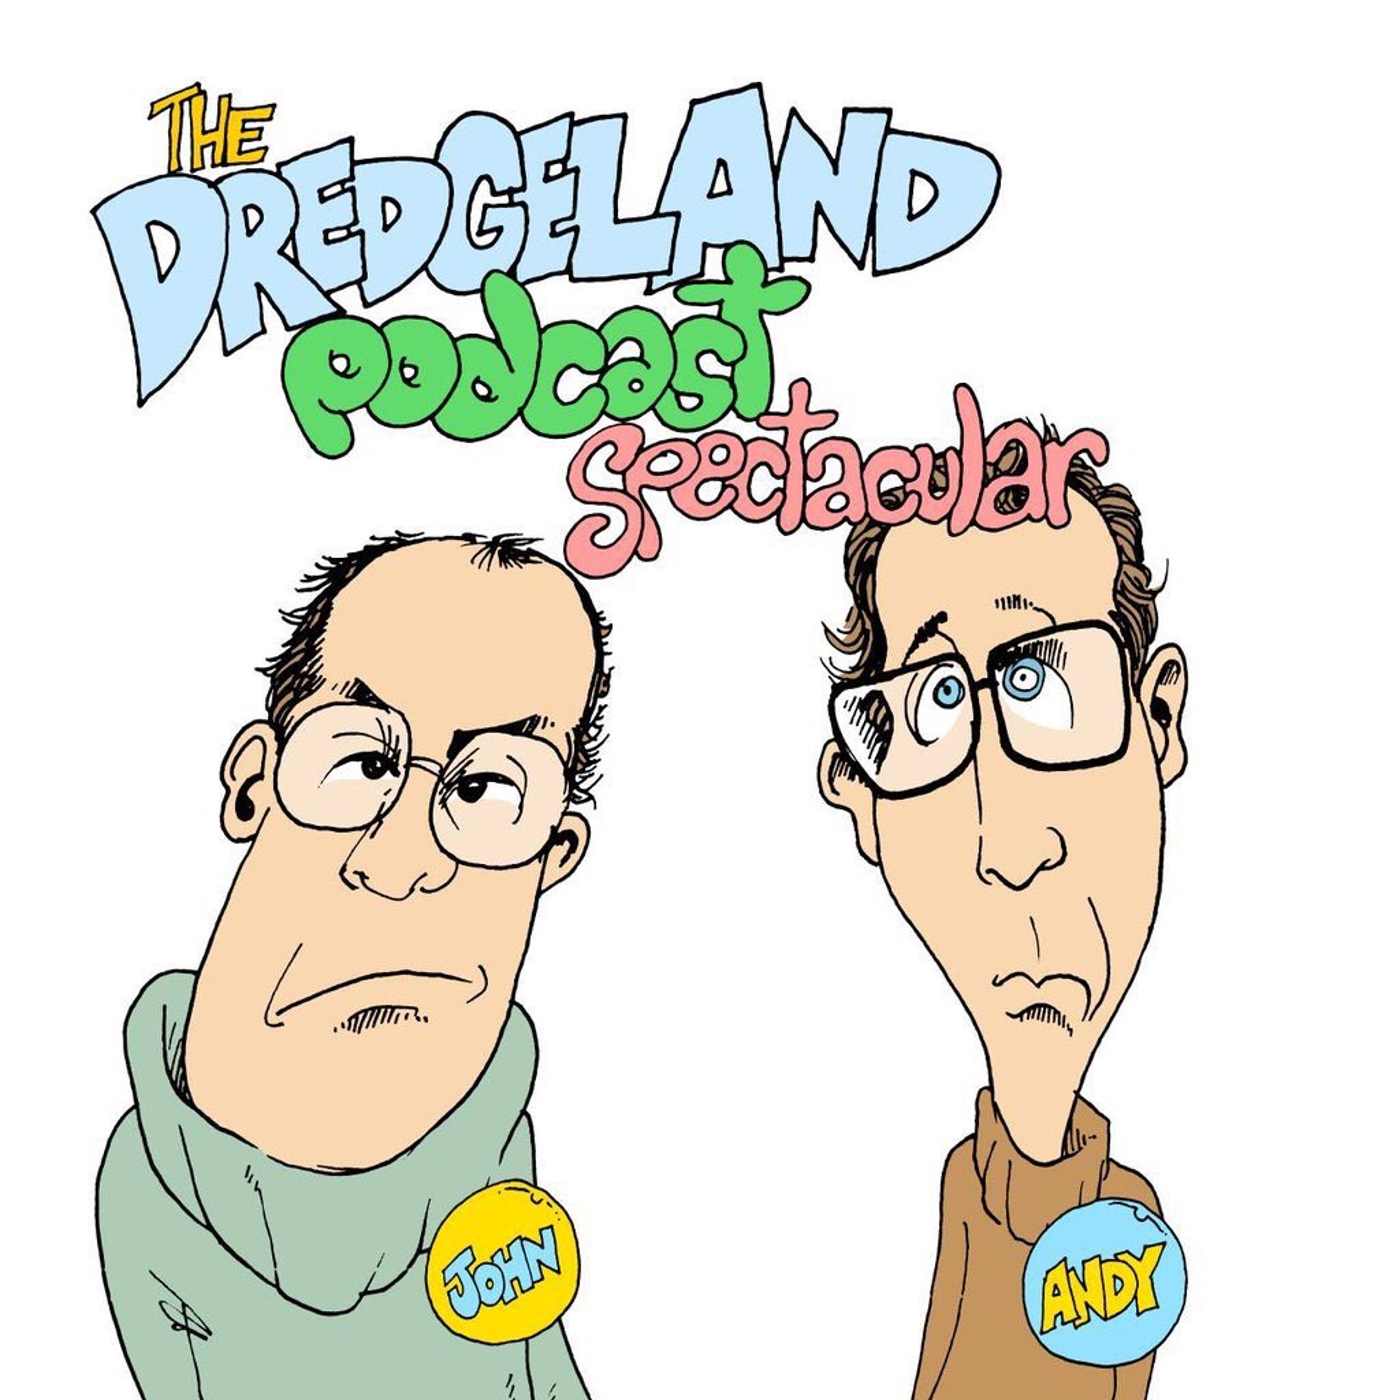 The DredgeLand Riverside Radio Quiz Show Game Show Game Show Game Special (9th May 2019)